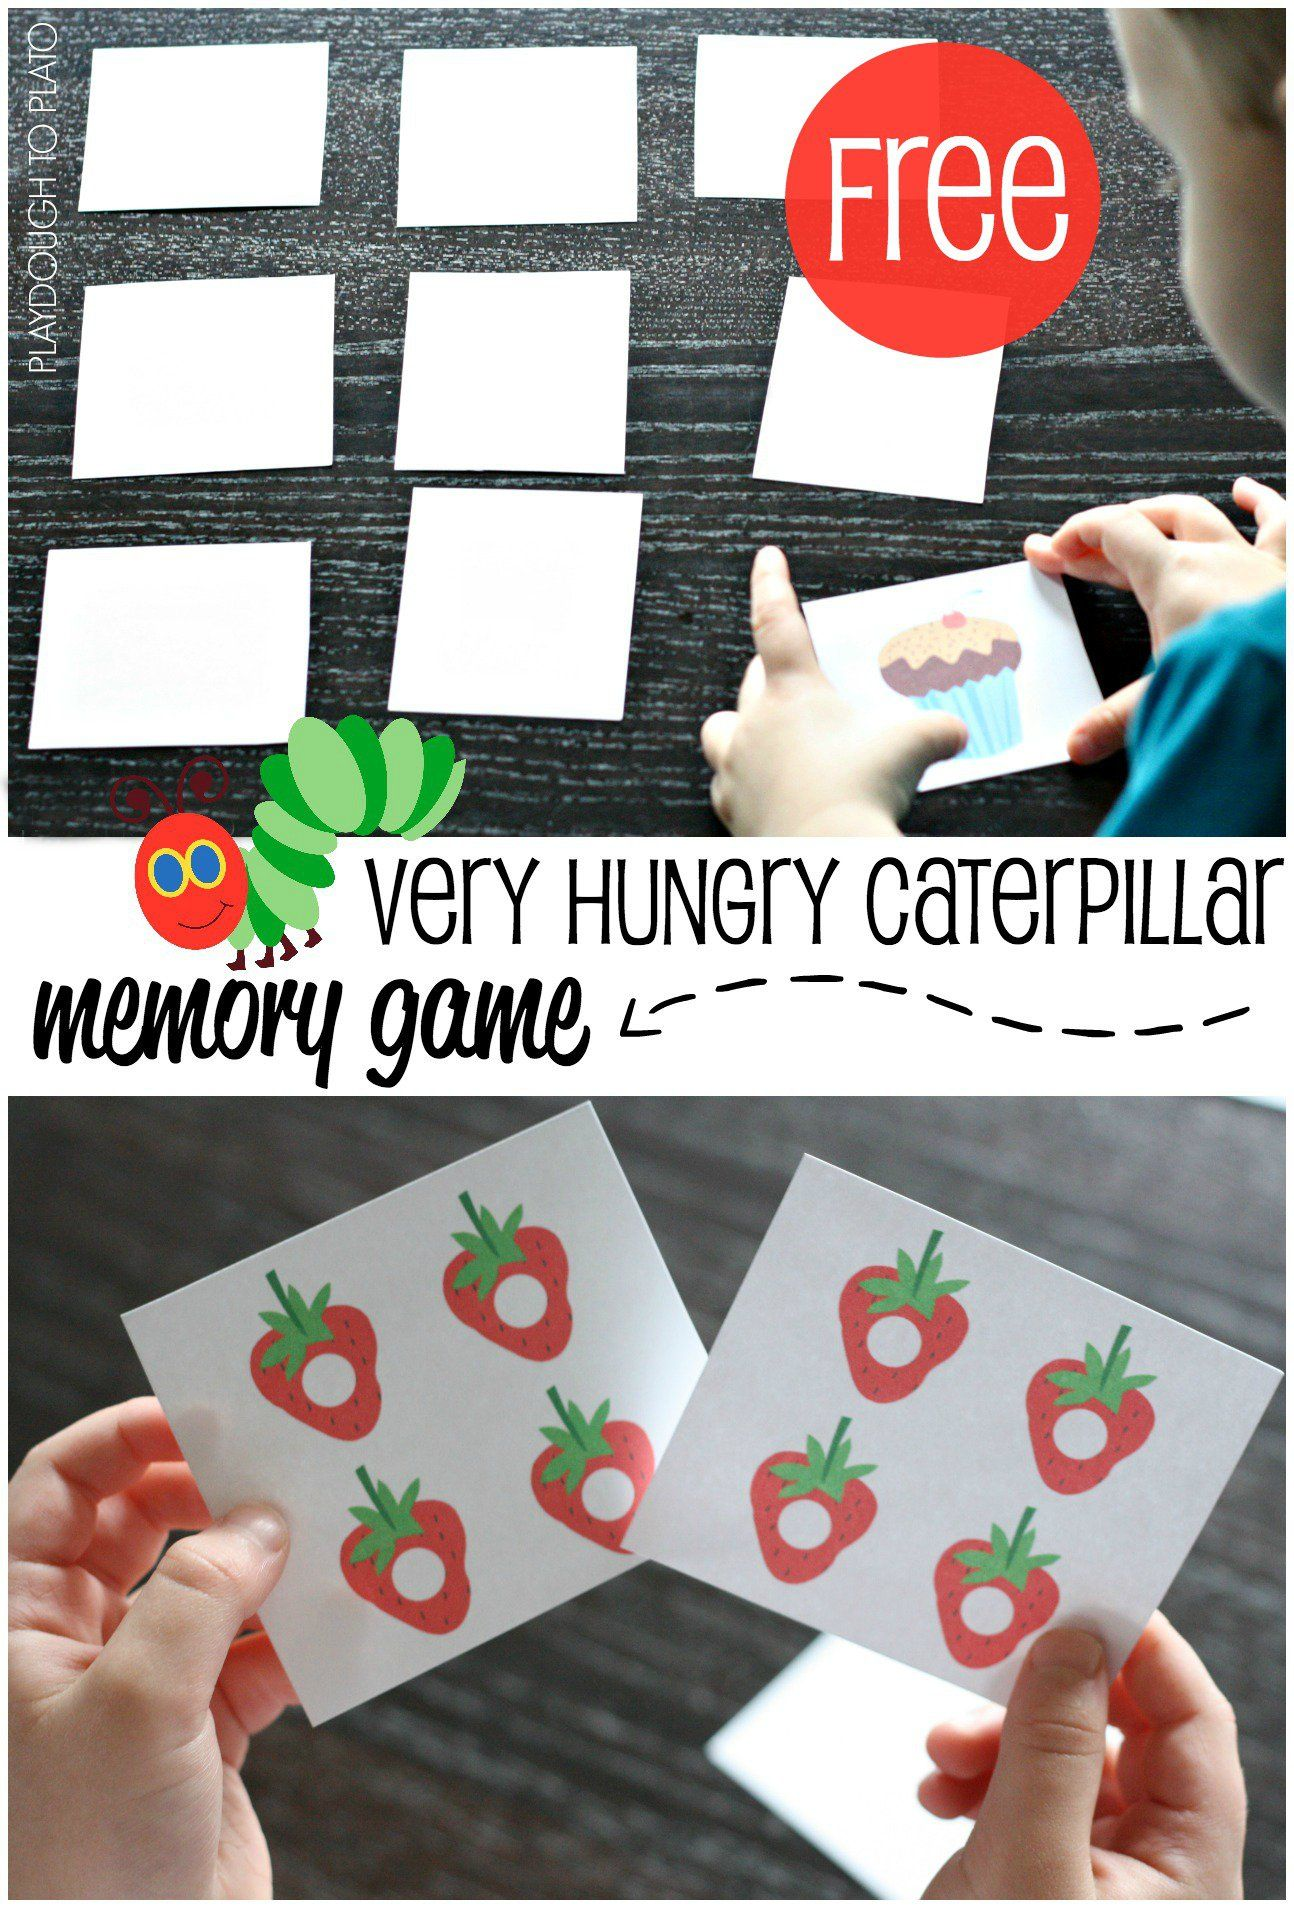 The Very Hungry Caterpillar Memory Game